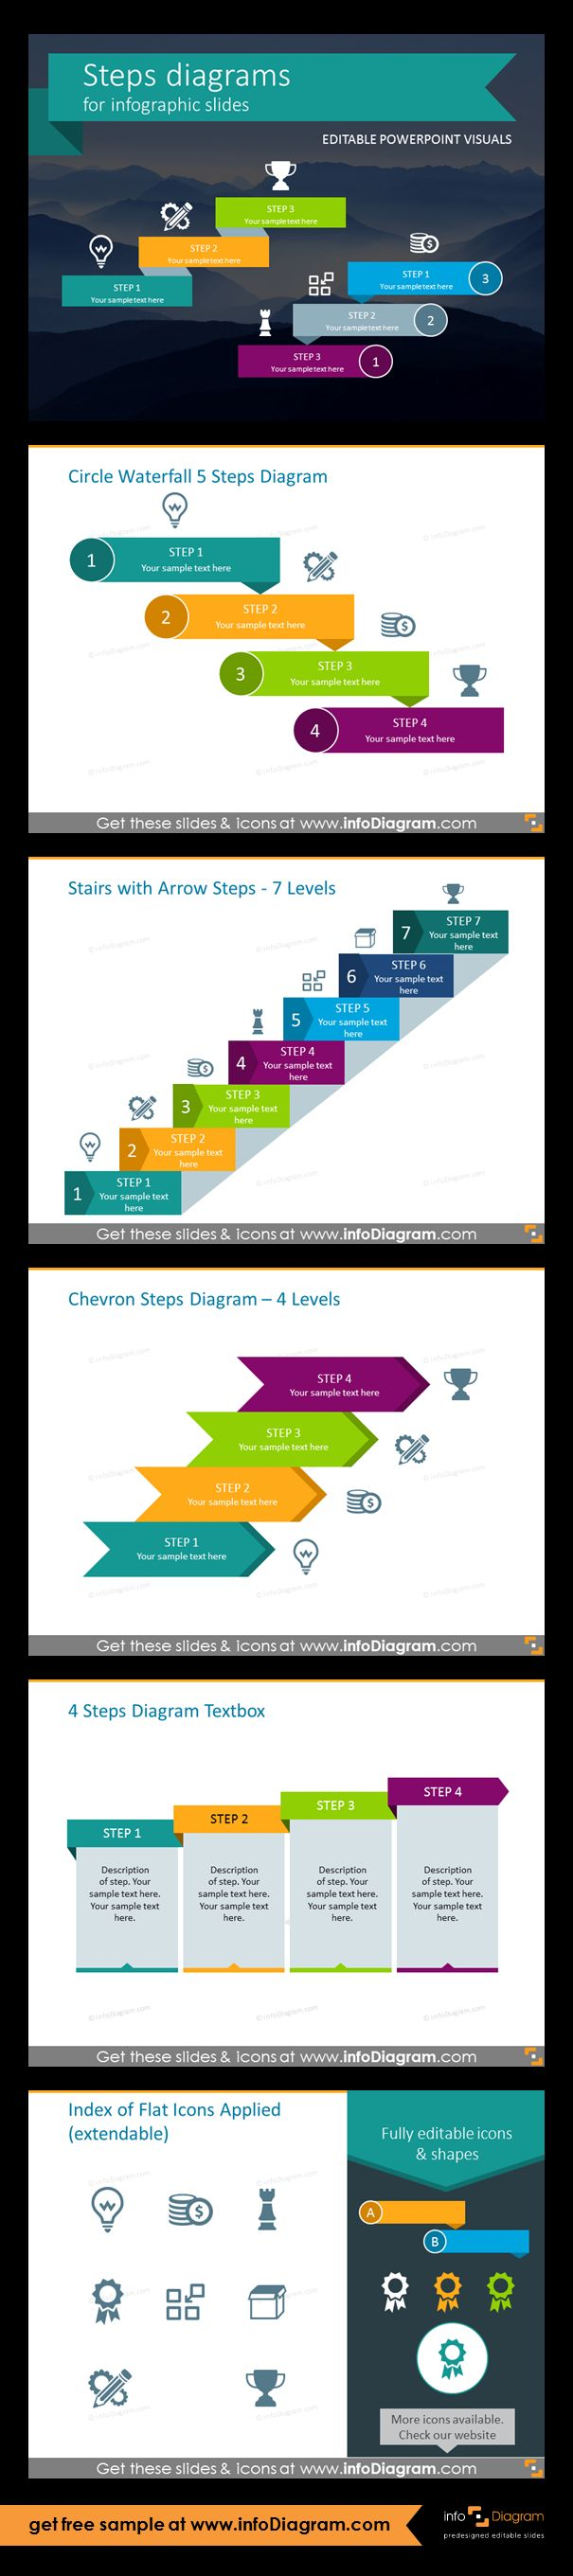 Template slides for Steps diagrams and Staircase infographics. Editable PowerPoint graphics for showing progress flow charts, project stages, planning phases and roadmaps by modern infographics. Fully editable style, size and colors. Waterfall 5 steps diagram, staies with arrow steps - 7 levels, chevron steps - 4 levels, 4 steps diagram textbox, flat icons. Use stairs diagrams for Agendas and sequence lists.